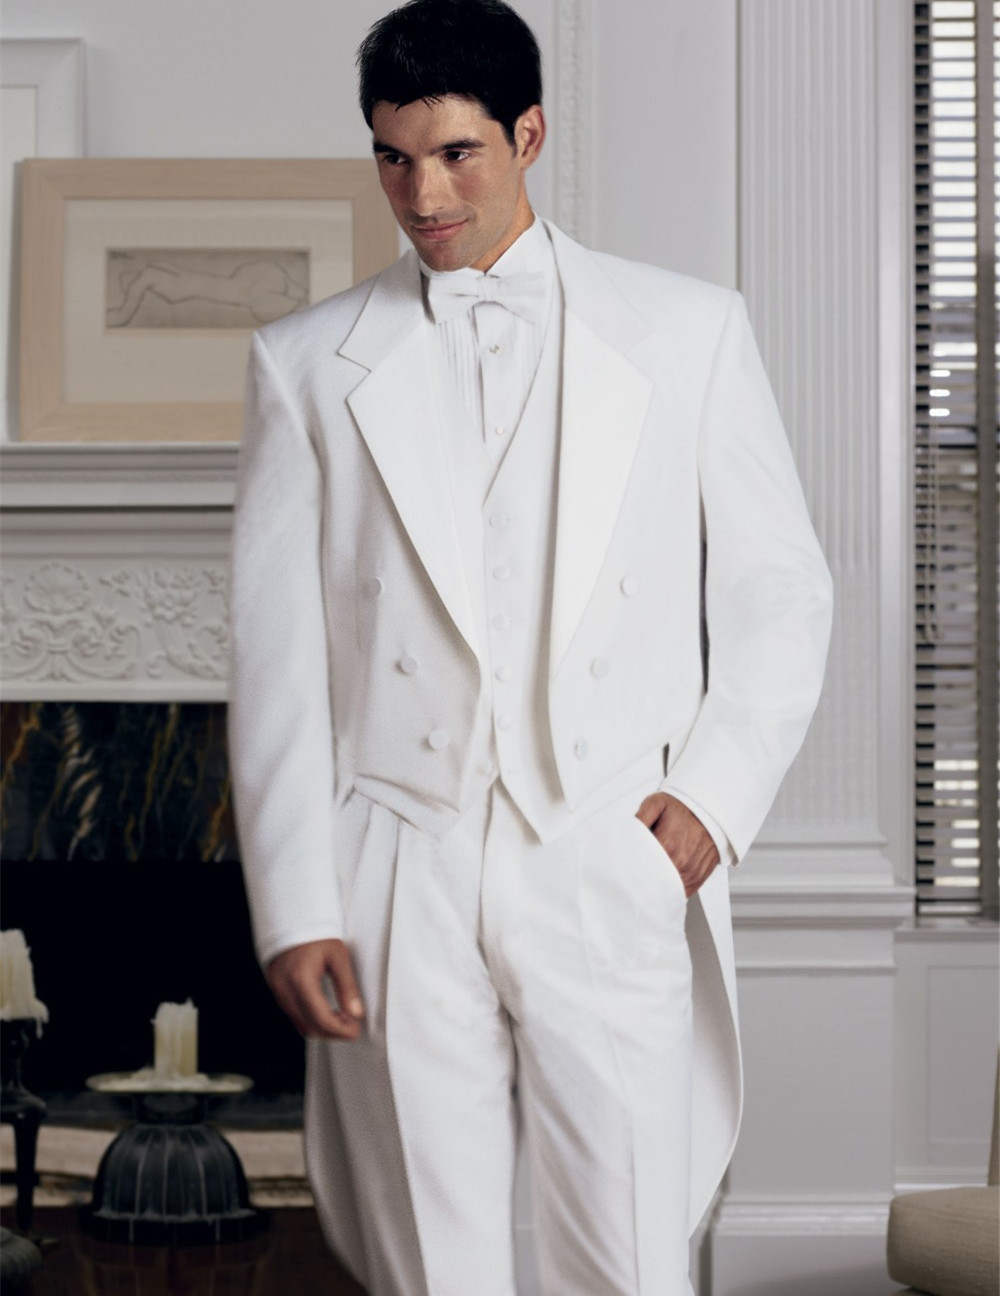 wedding suits groom tuxedo for men 2016 custom made suit white 3 piece suits free shipping